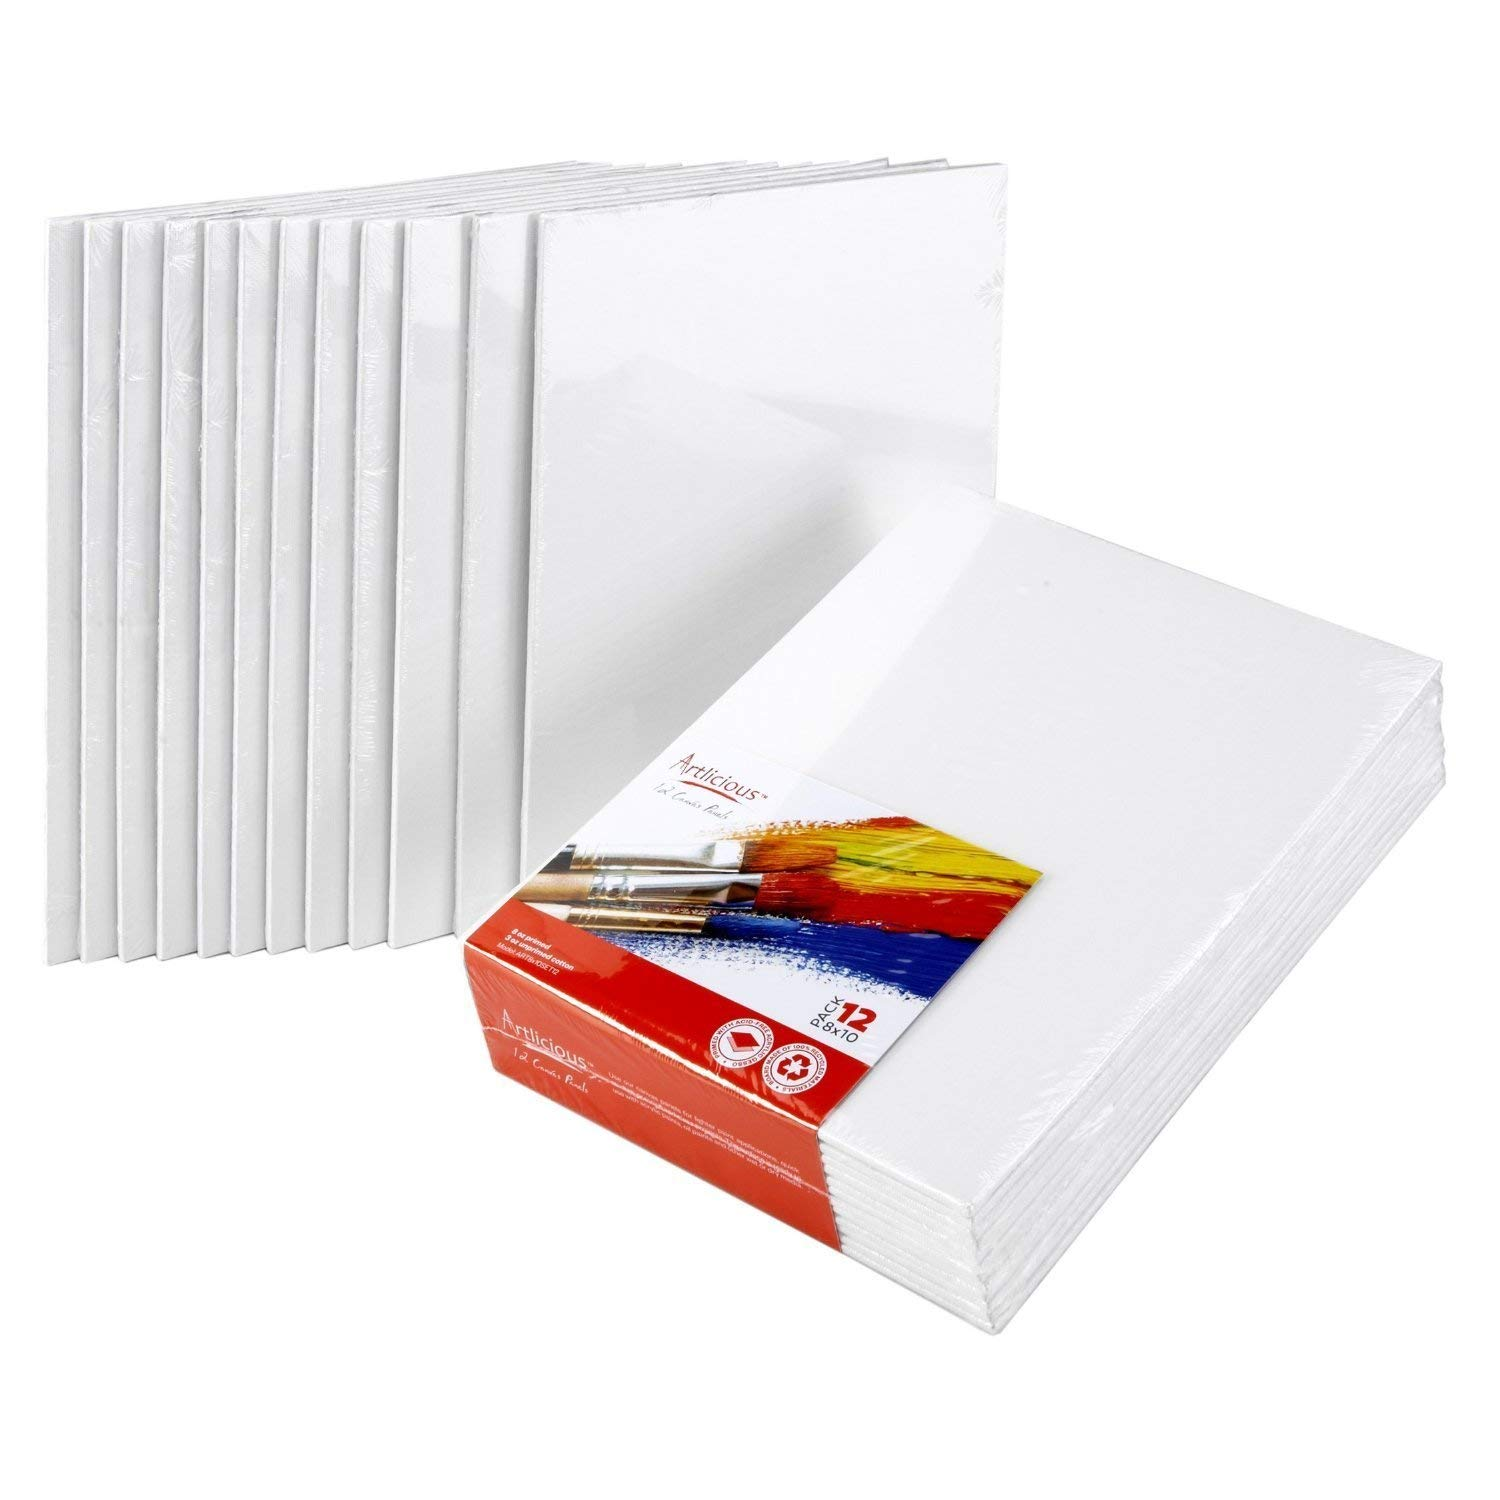 8X8 Super Value Pack Artlicious Canvas Panels 12 Pack Artist Canvas Boards for Painting